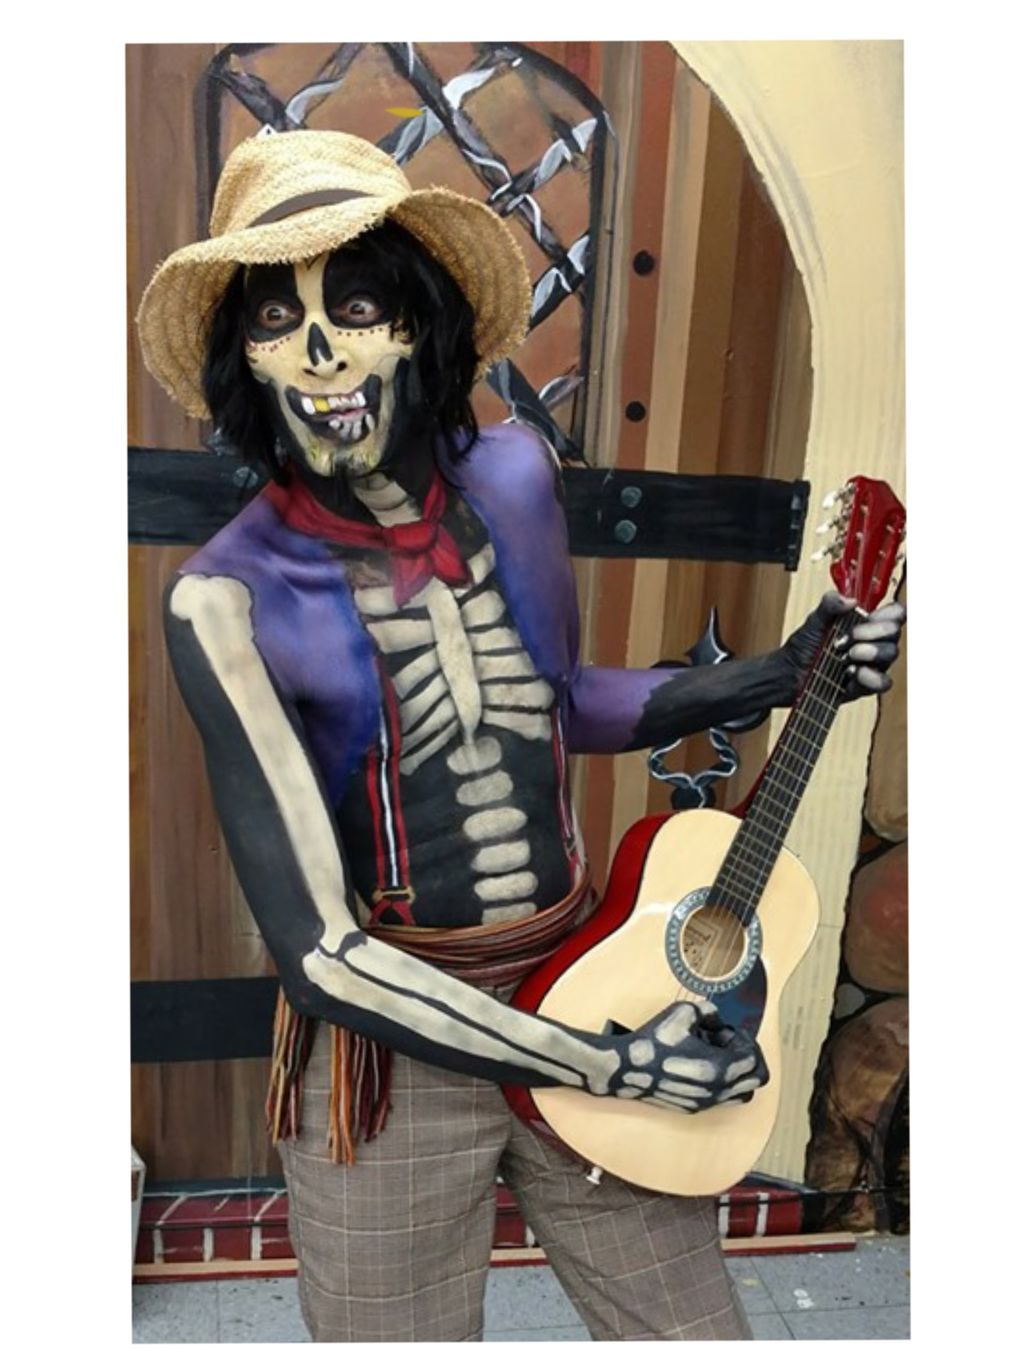 Bodypaint-Hector from the movie Coco